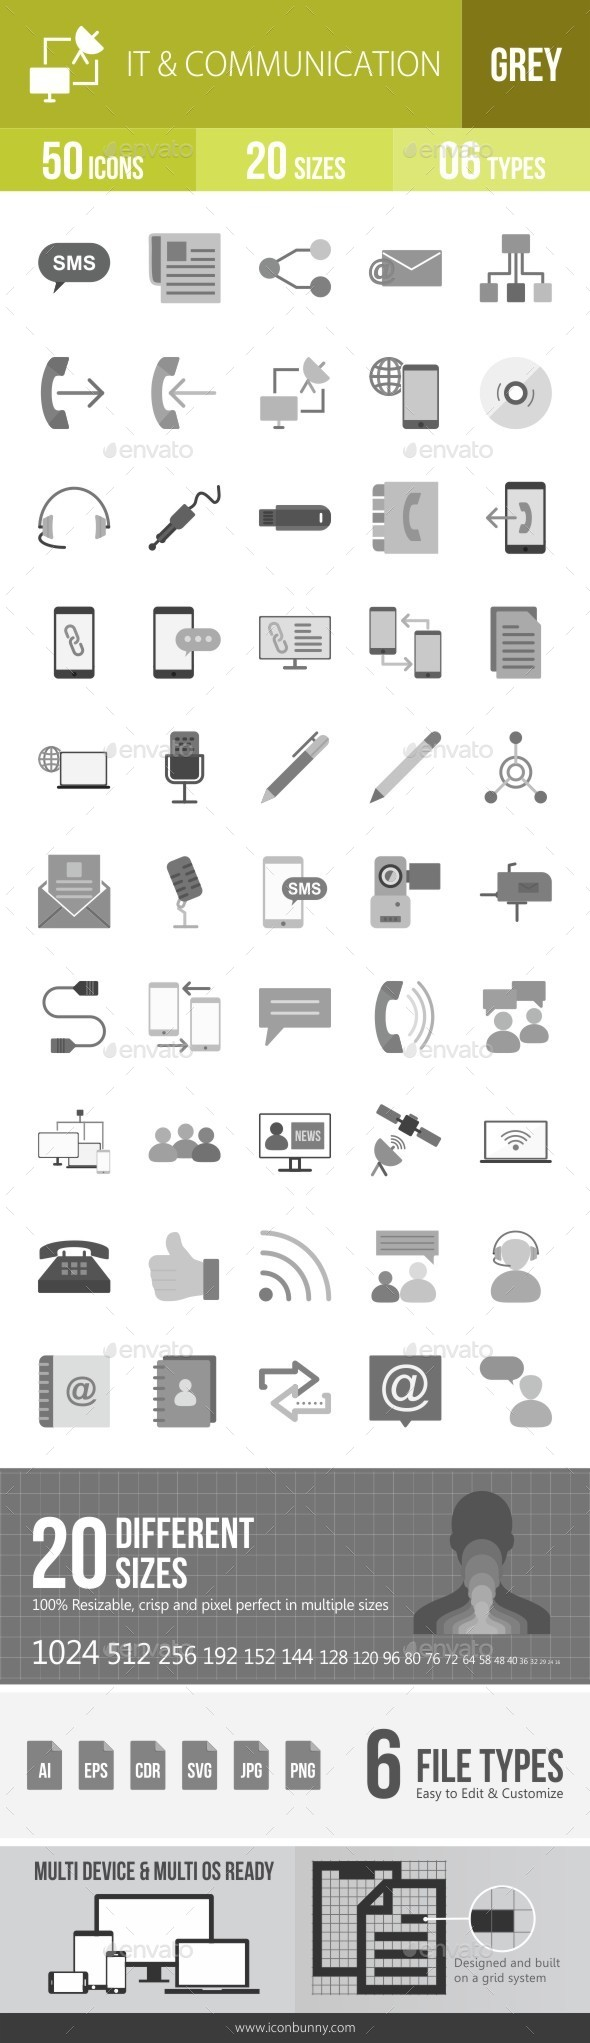 IT & Communication Greyscale Icons - Icons